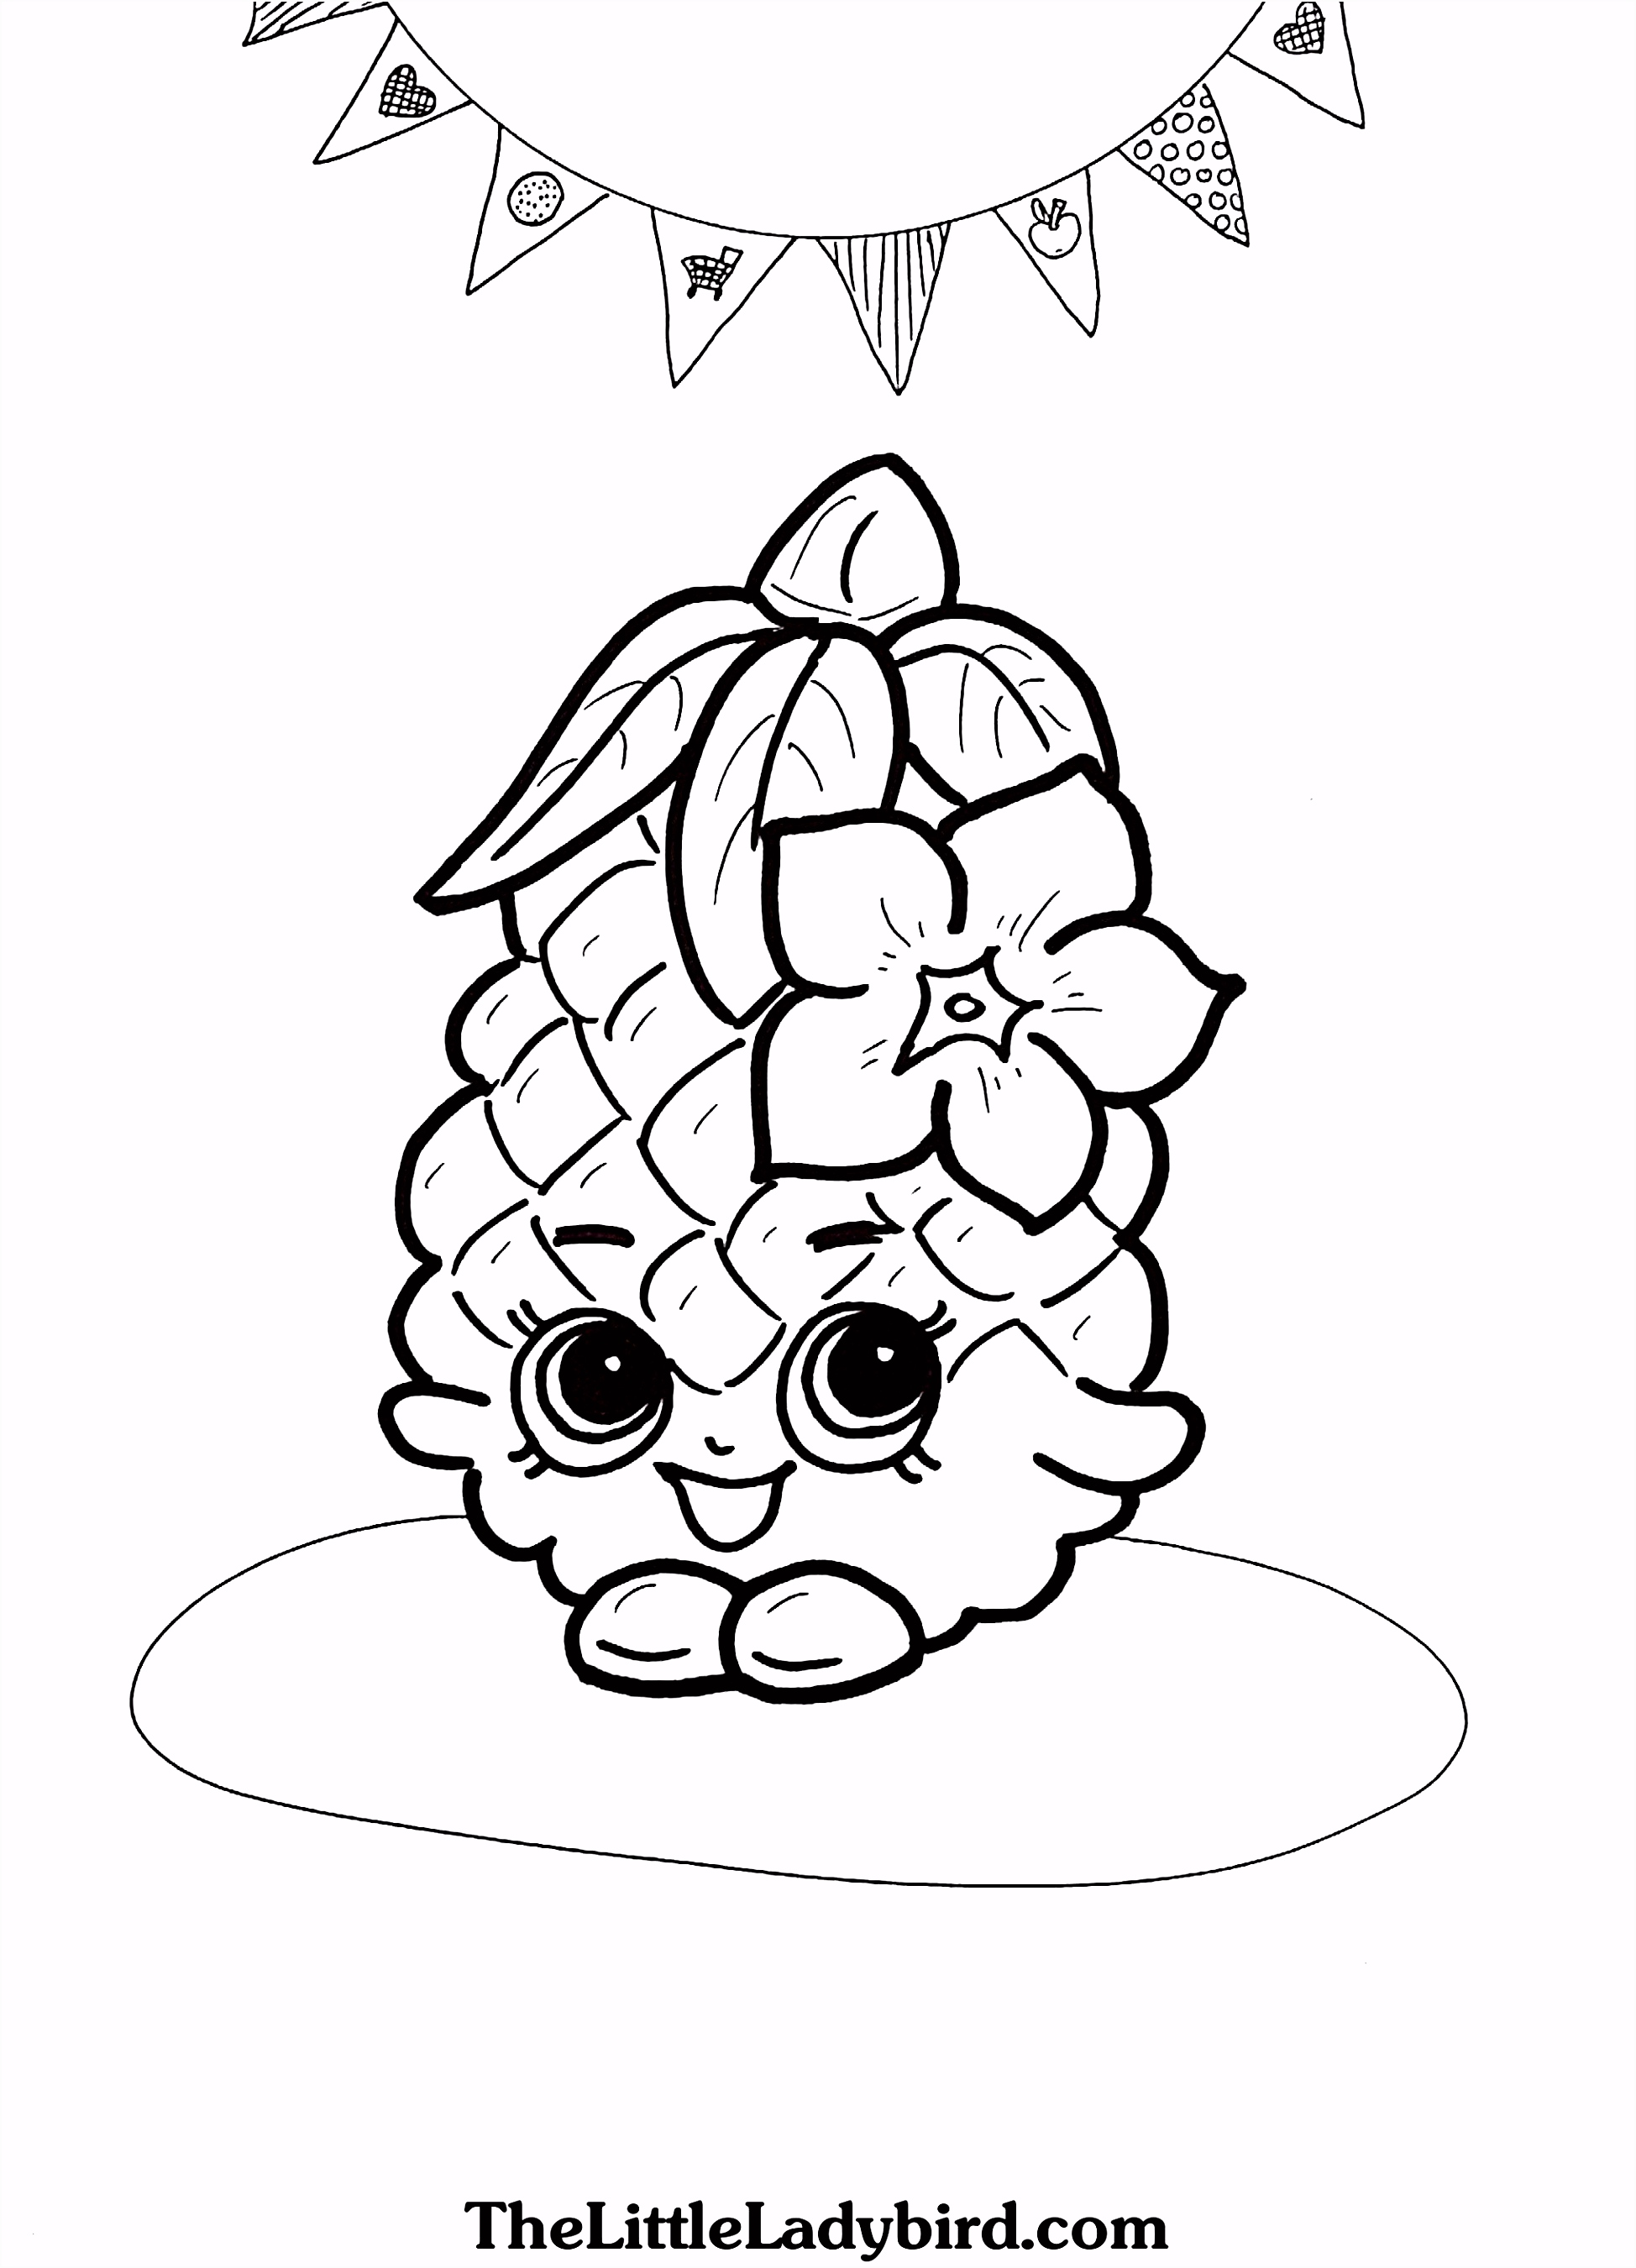 Spiderman Colorare – Amazing Spider Man 2 Coloring Pages Free